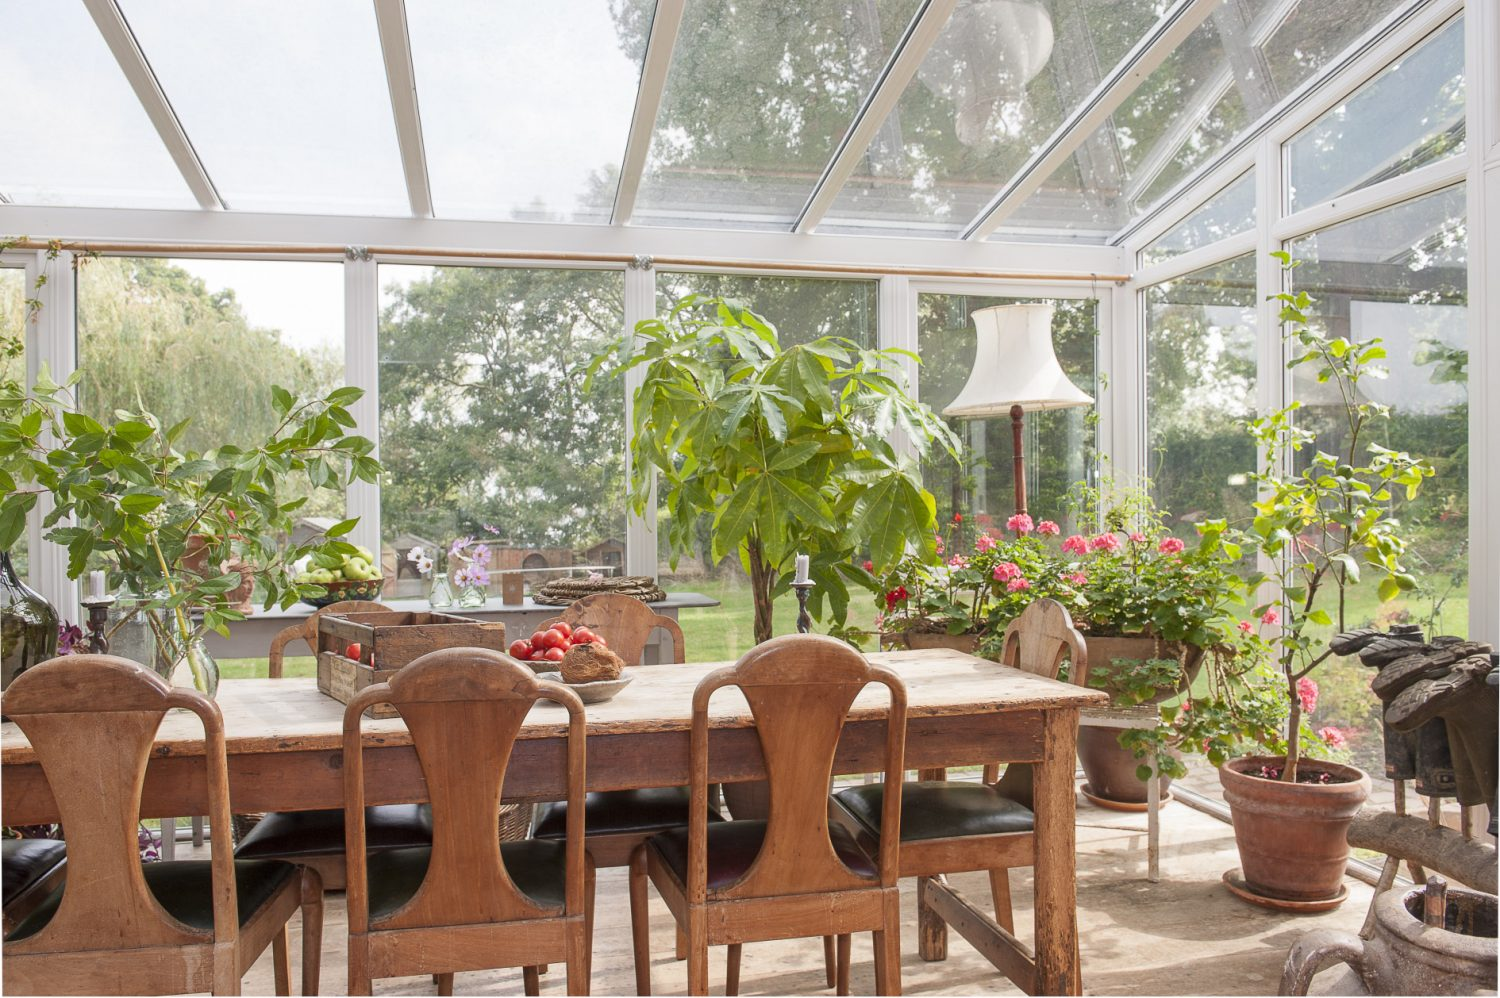 The kitchen opens into the conservatory which looks out into the garden, with its rows of neat vegetable beds. Tina has brought a touch of the outside in, filling large terracotta pots, wooden trugs and troughs with geraniums, climbers and trees